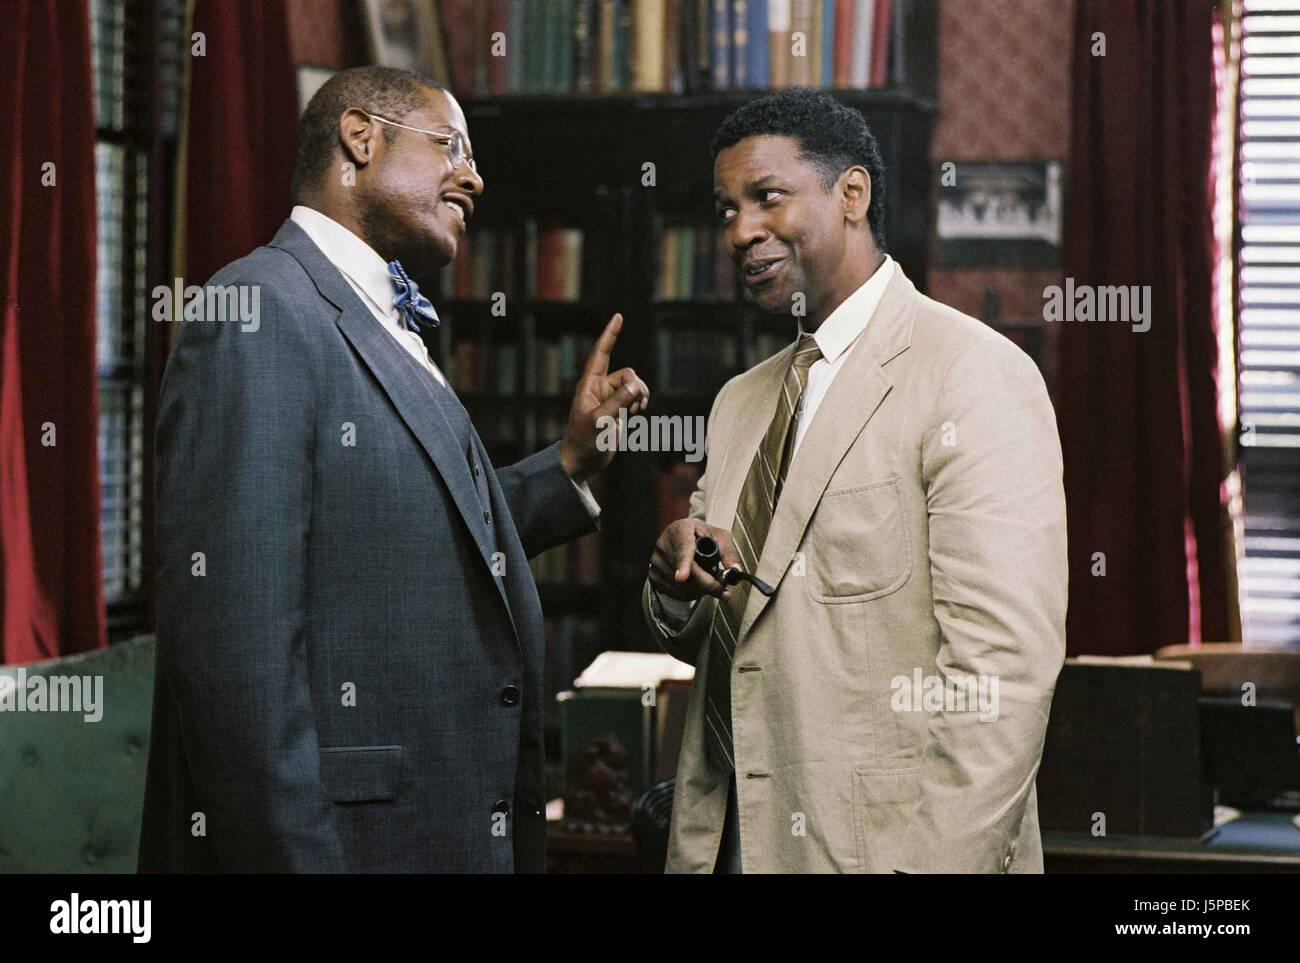 THE GREAT DEBATERS (2007)  FOREST WHITAKER  DENZEL WASHINGTON  DENZEL WASHINGTON (DIR)  MIRAMAX/MOVIESTORE COLLECTION - Stock Image